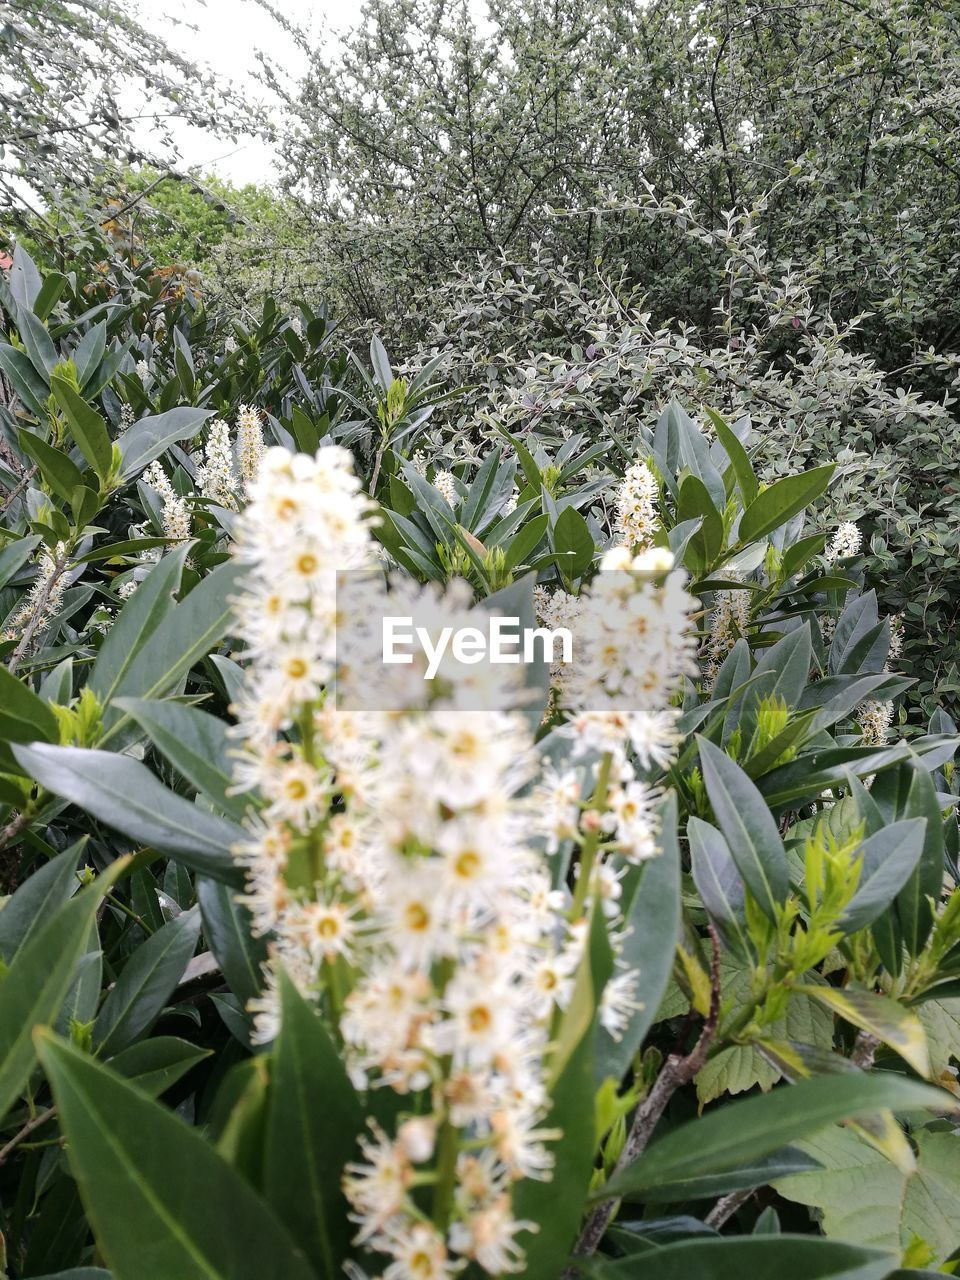 growth, flower, nature, plant, no people, outdoors, leaf, day, field, fragility, green color, freshness, beauty in nature, close-up, tree, flower head